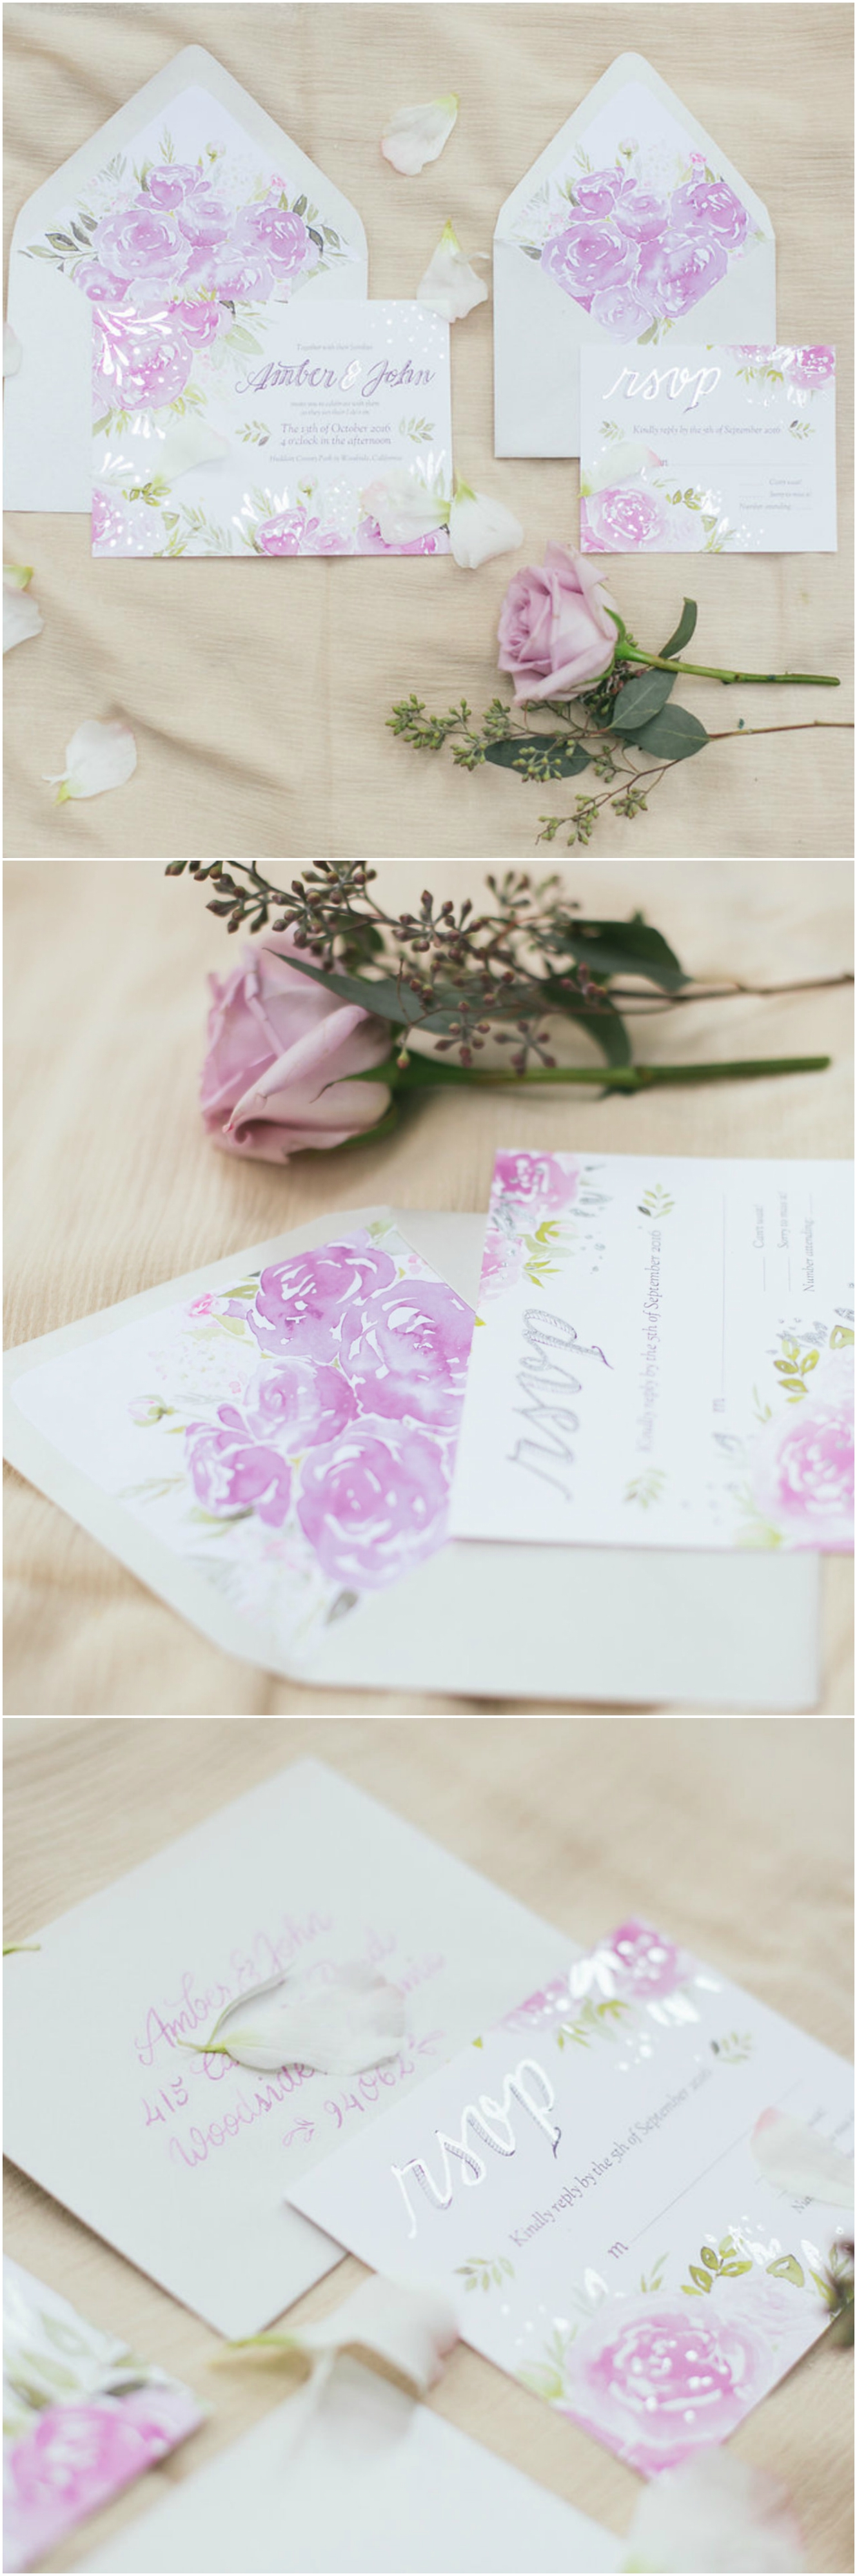 Wedding Invitations Floral Paper Suite Purple Roses Michelle